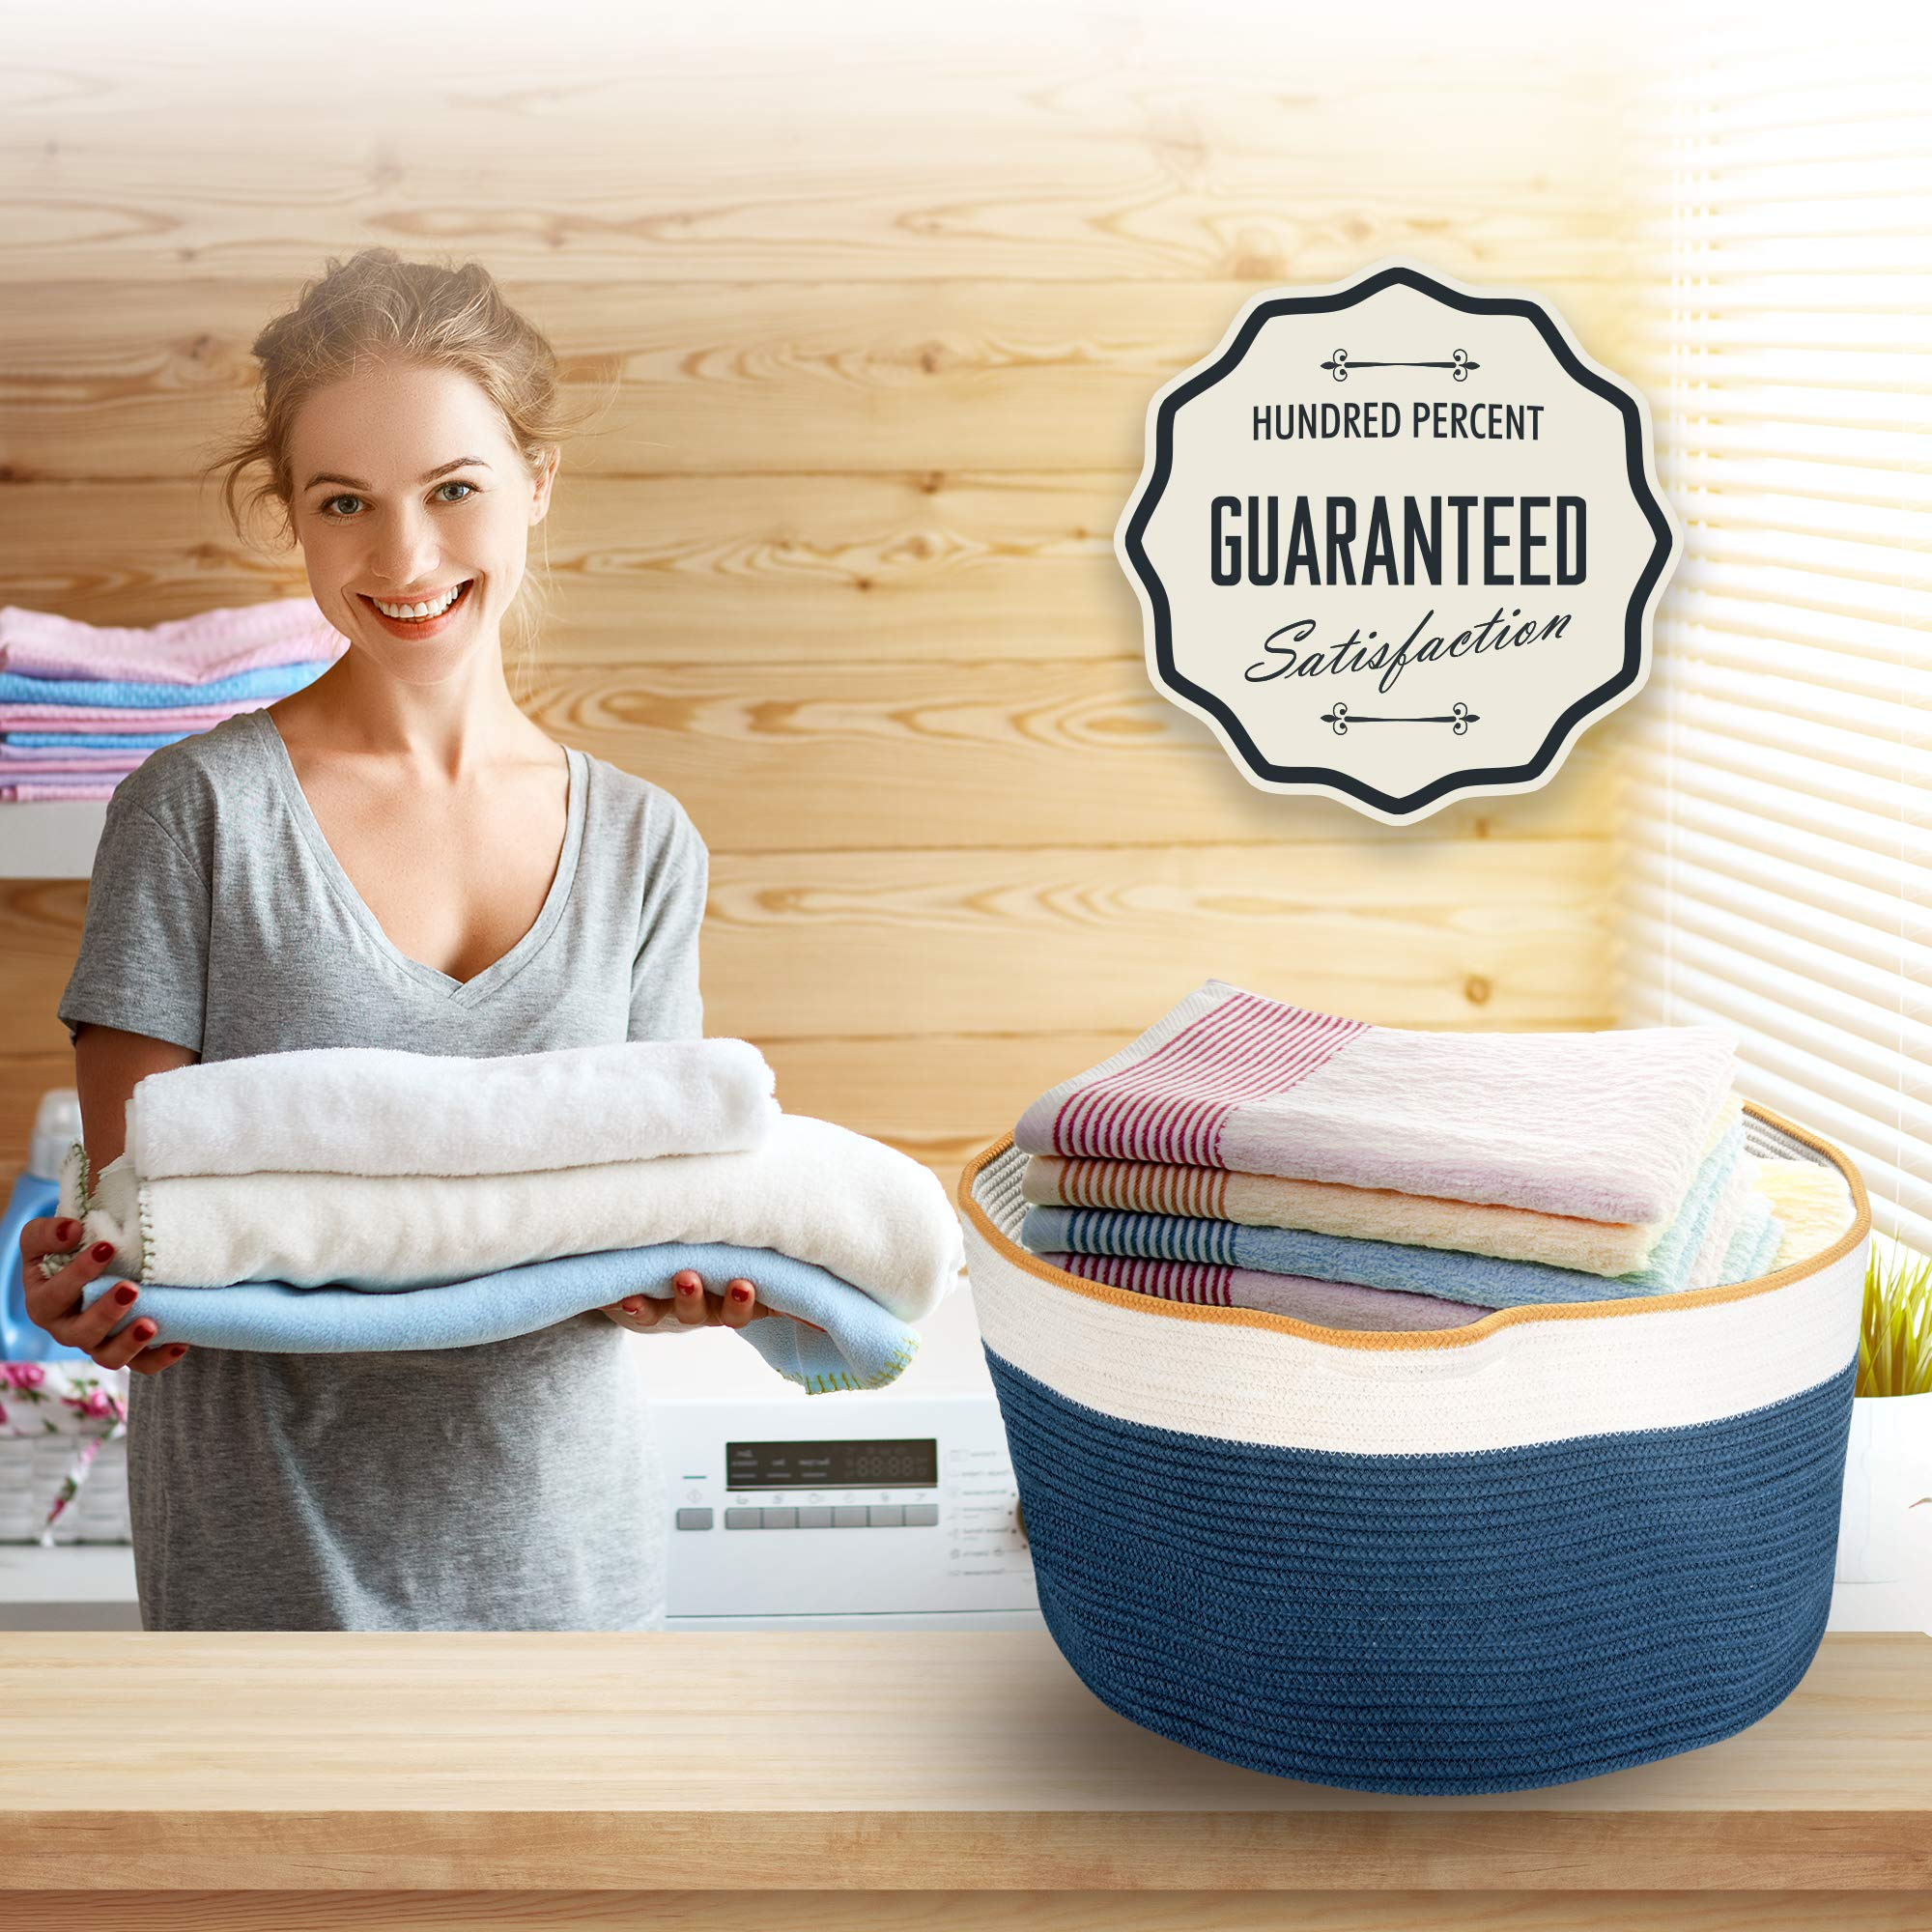 XXXLarge Woven Baskets for Storage - Organize Your Baby's Toys, Clothes, Laundry, Comforter, Blanket, Pillows - Cotton Rope Storage Decorative Organizer Bin for Living Room, Playroom and Kids Room by ChicLiving